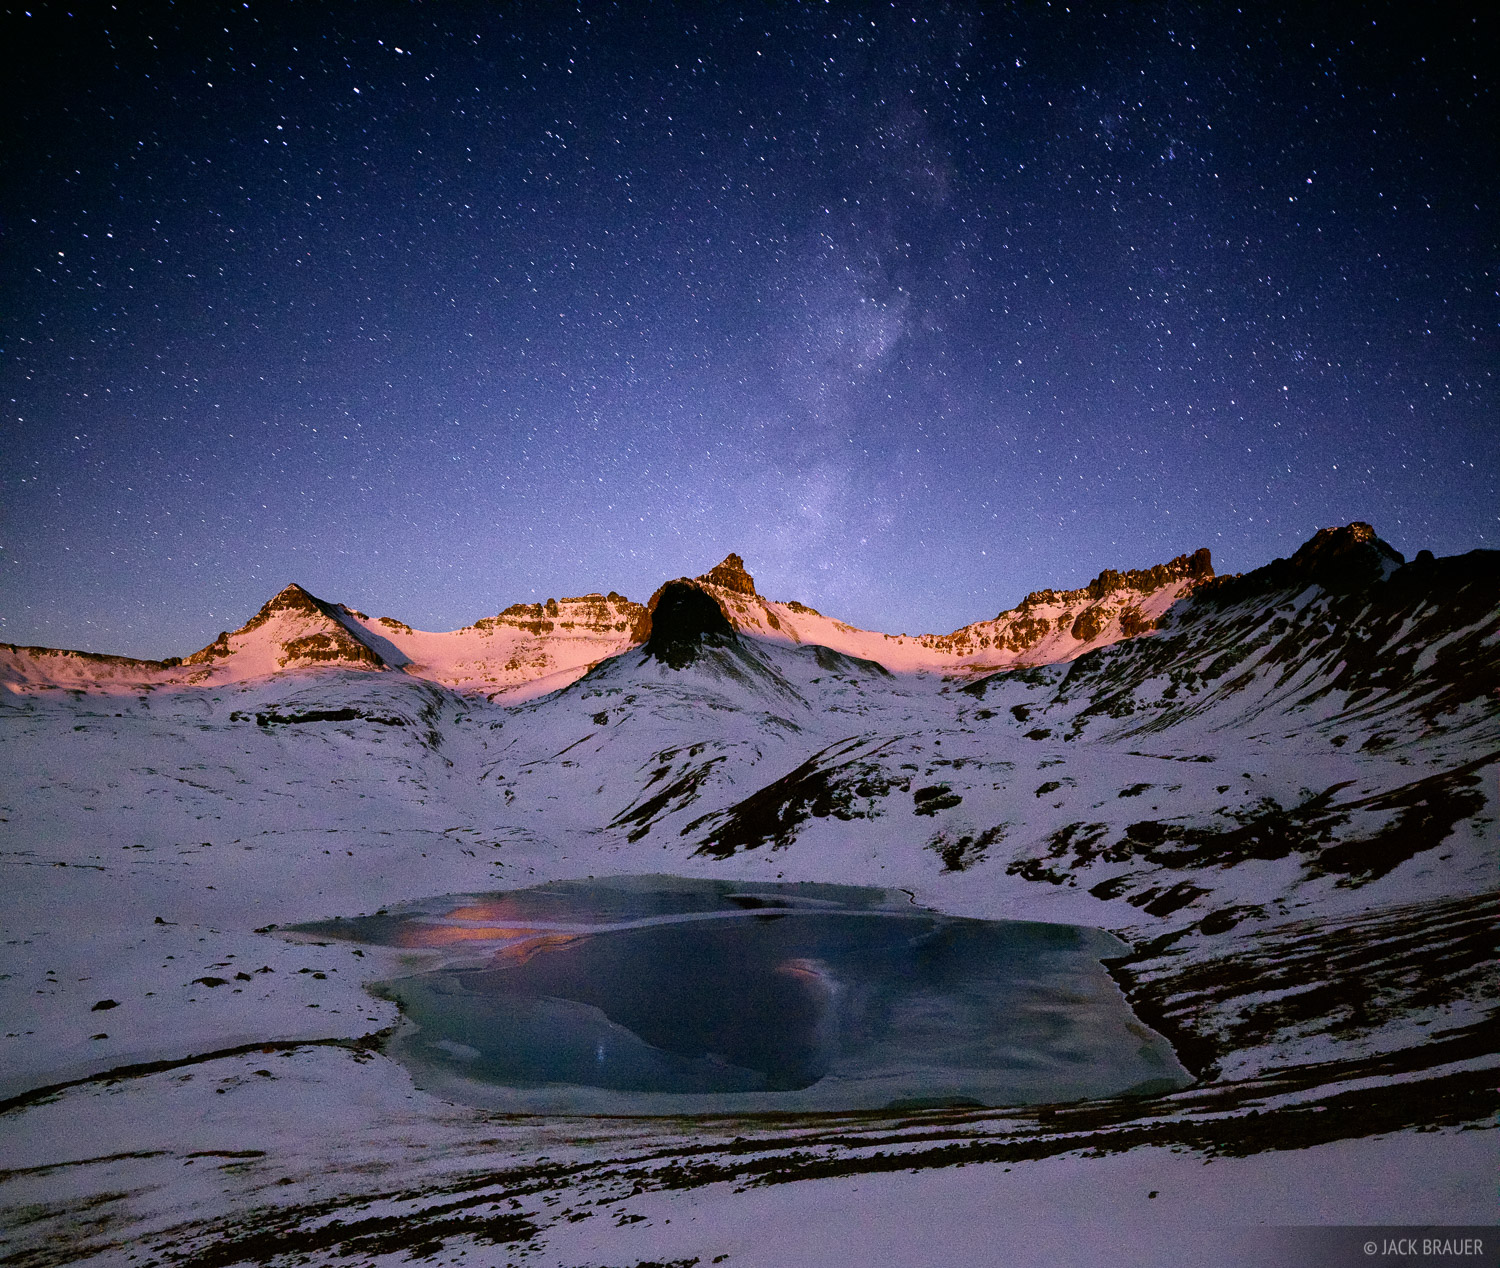 lunar alpenglow, moonlight, Ice Lakes Basin, Colorado, alpenglow, stars, photo